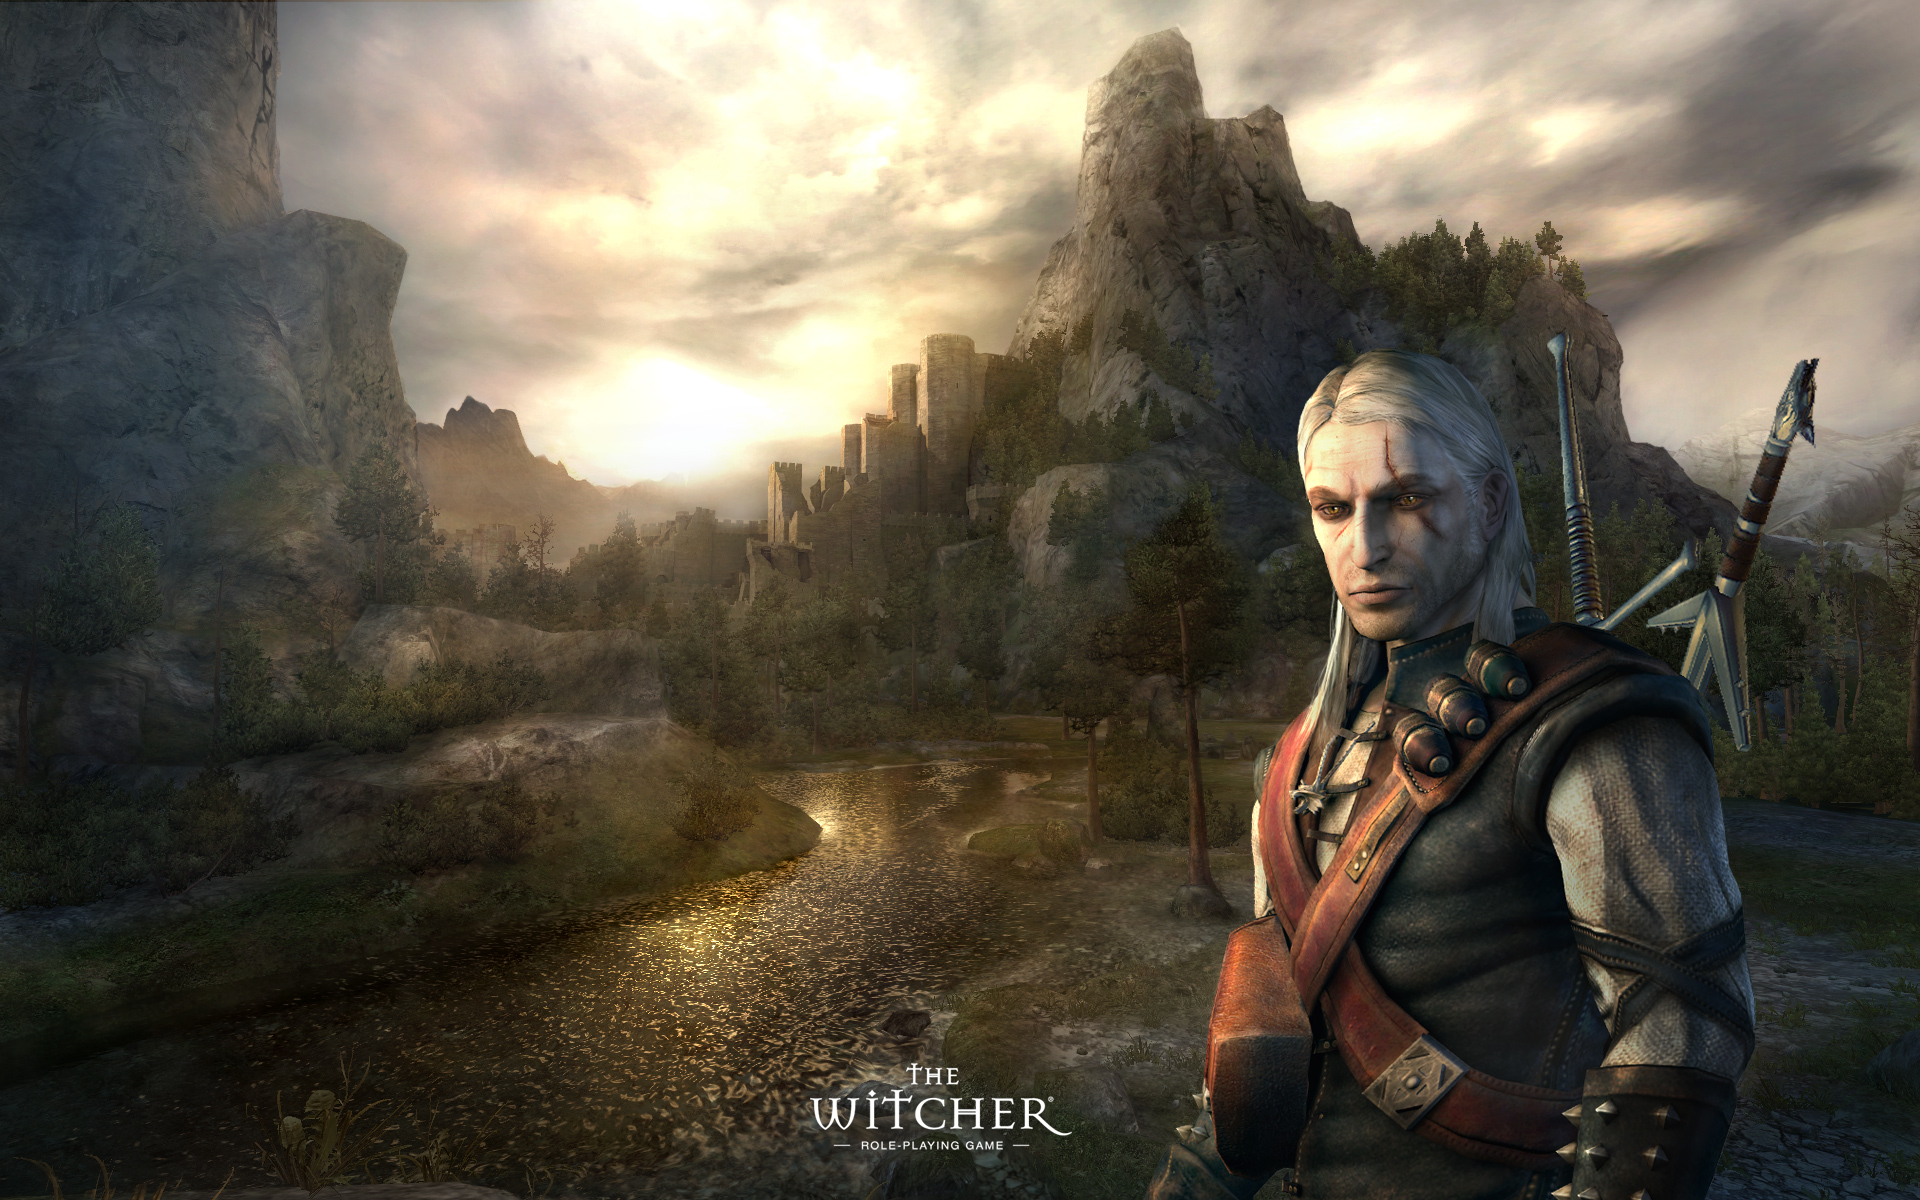 the witcher computer wallpapers desktop backgrounds